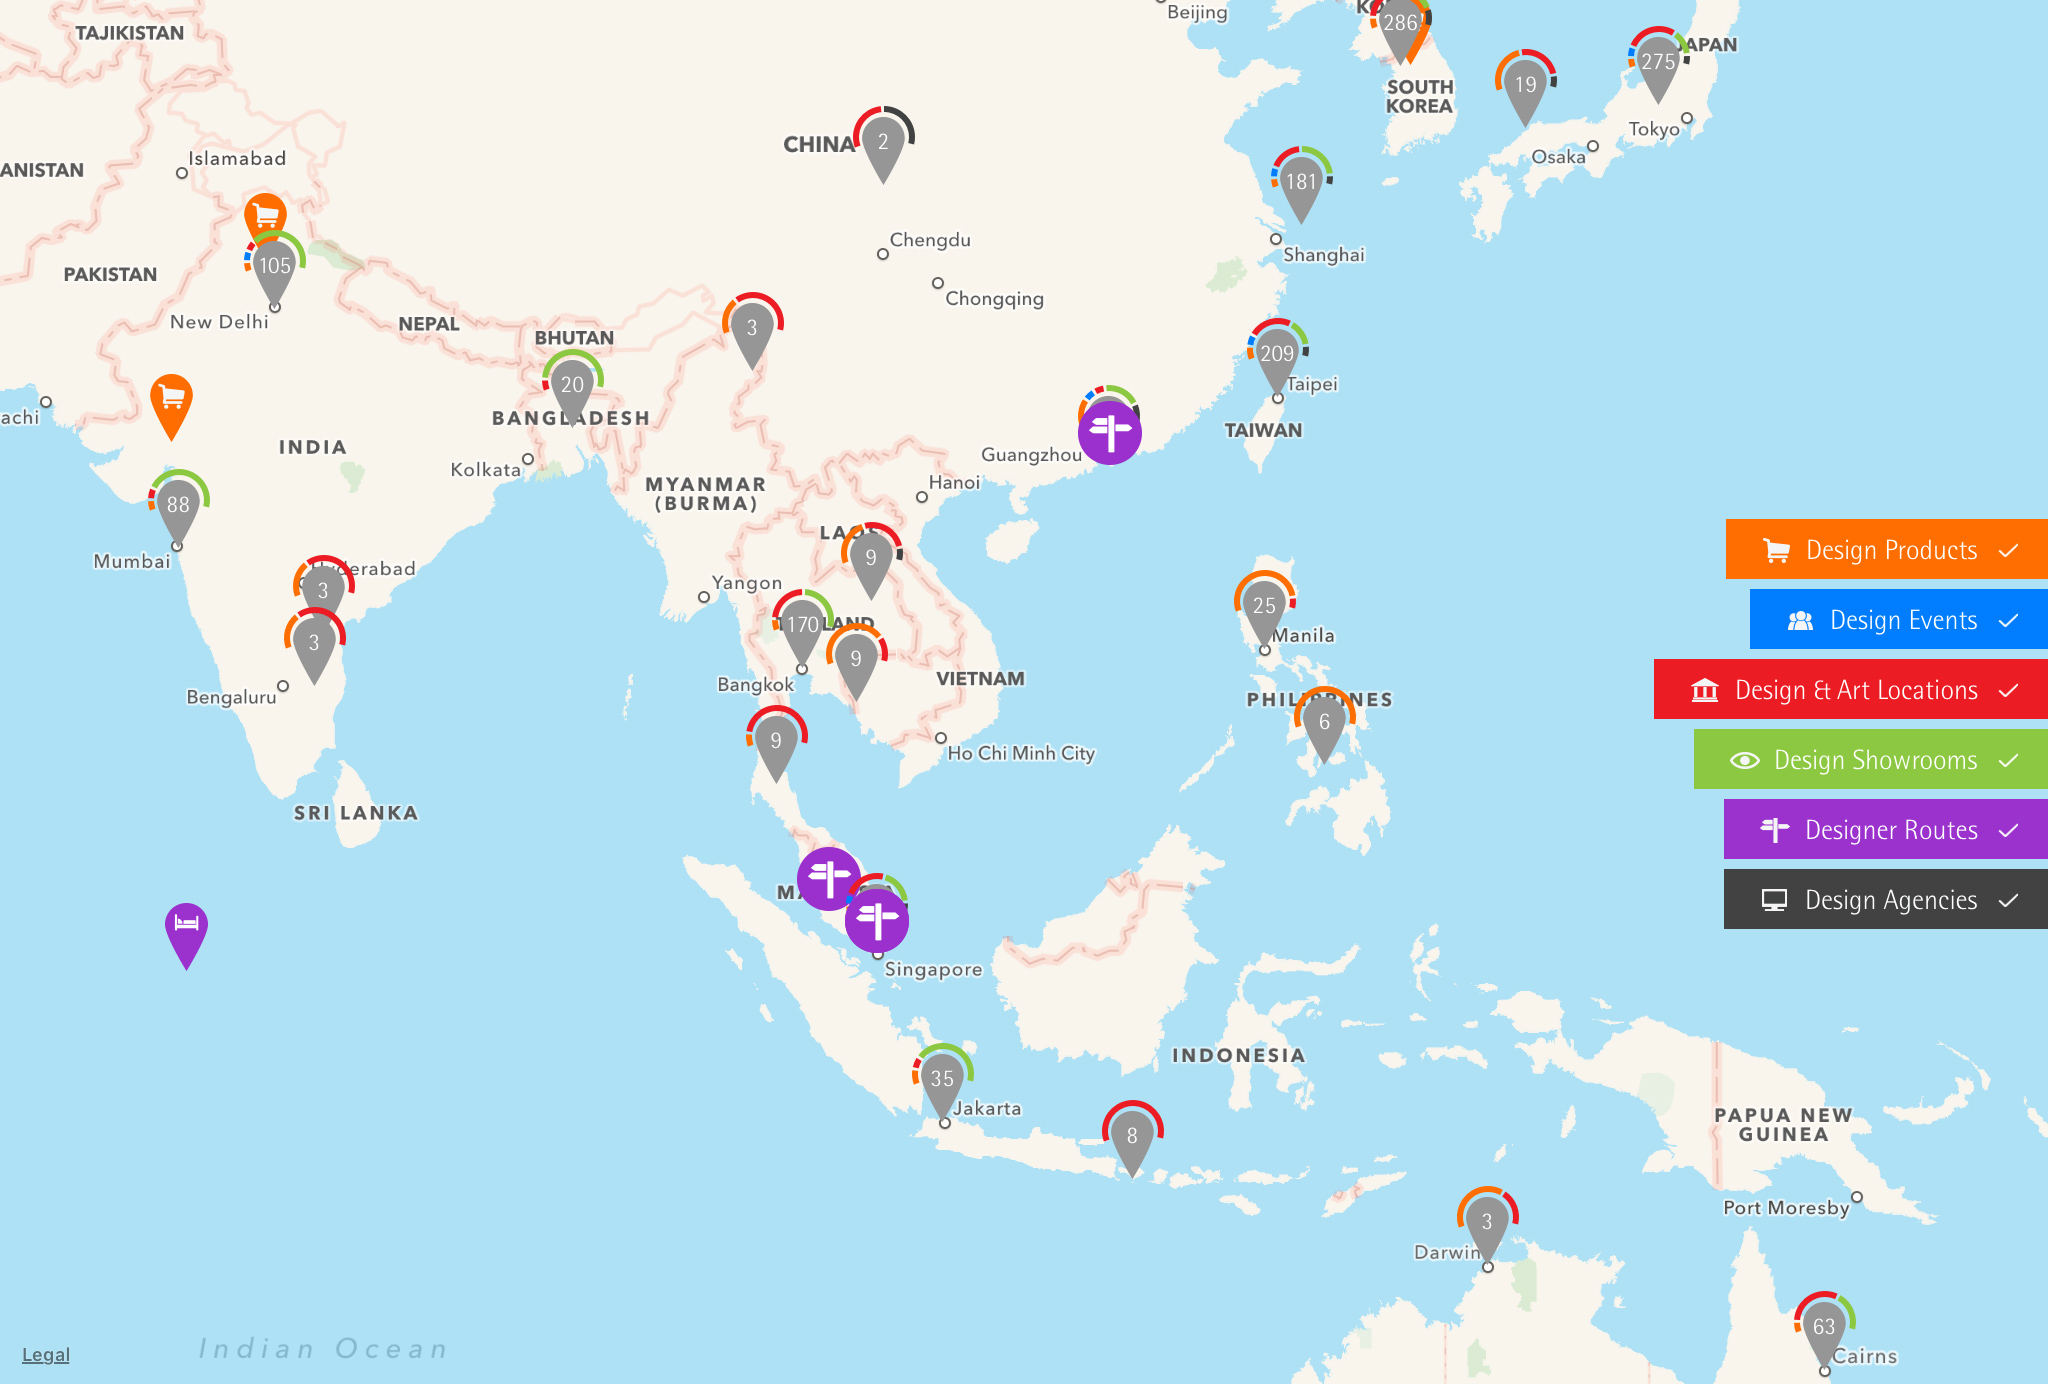 red dot maps design locations asia